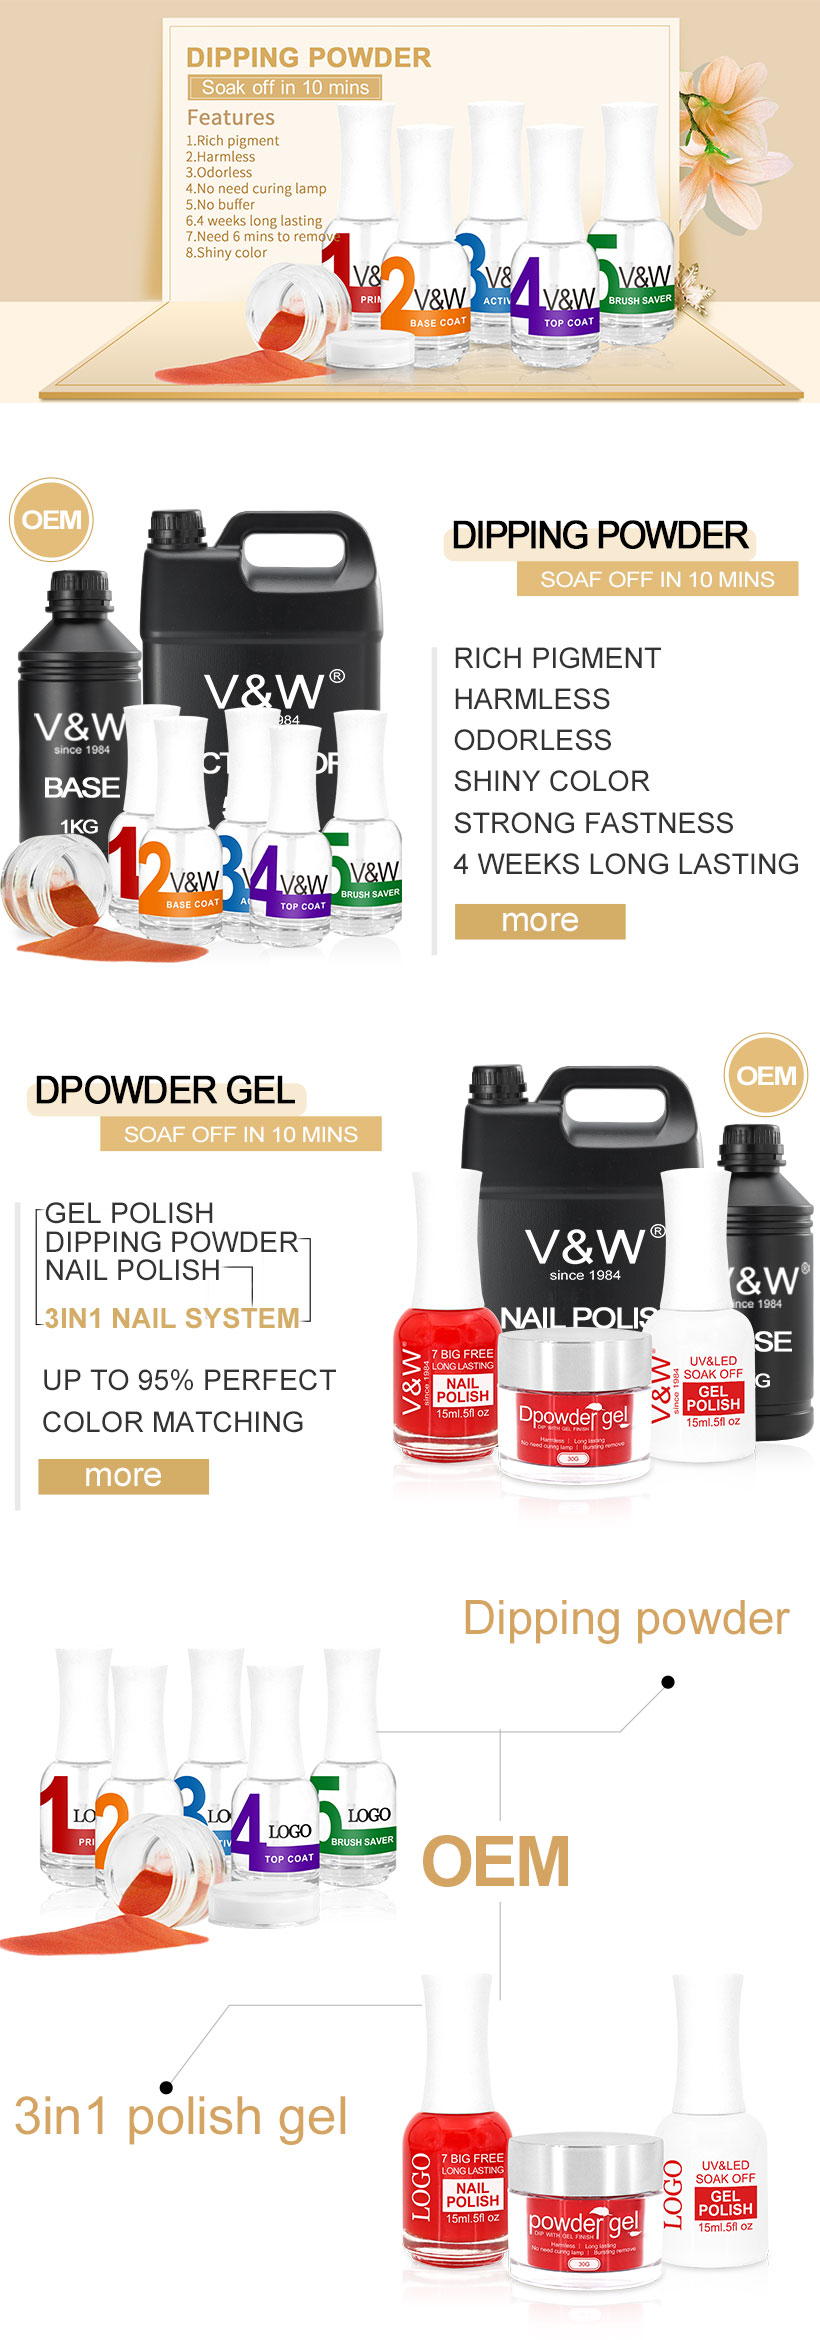 Easy Remove Quick Gel Nail Acrylic Dipping Powder System | Dip ...